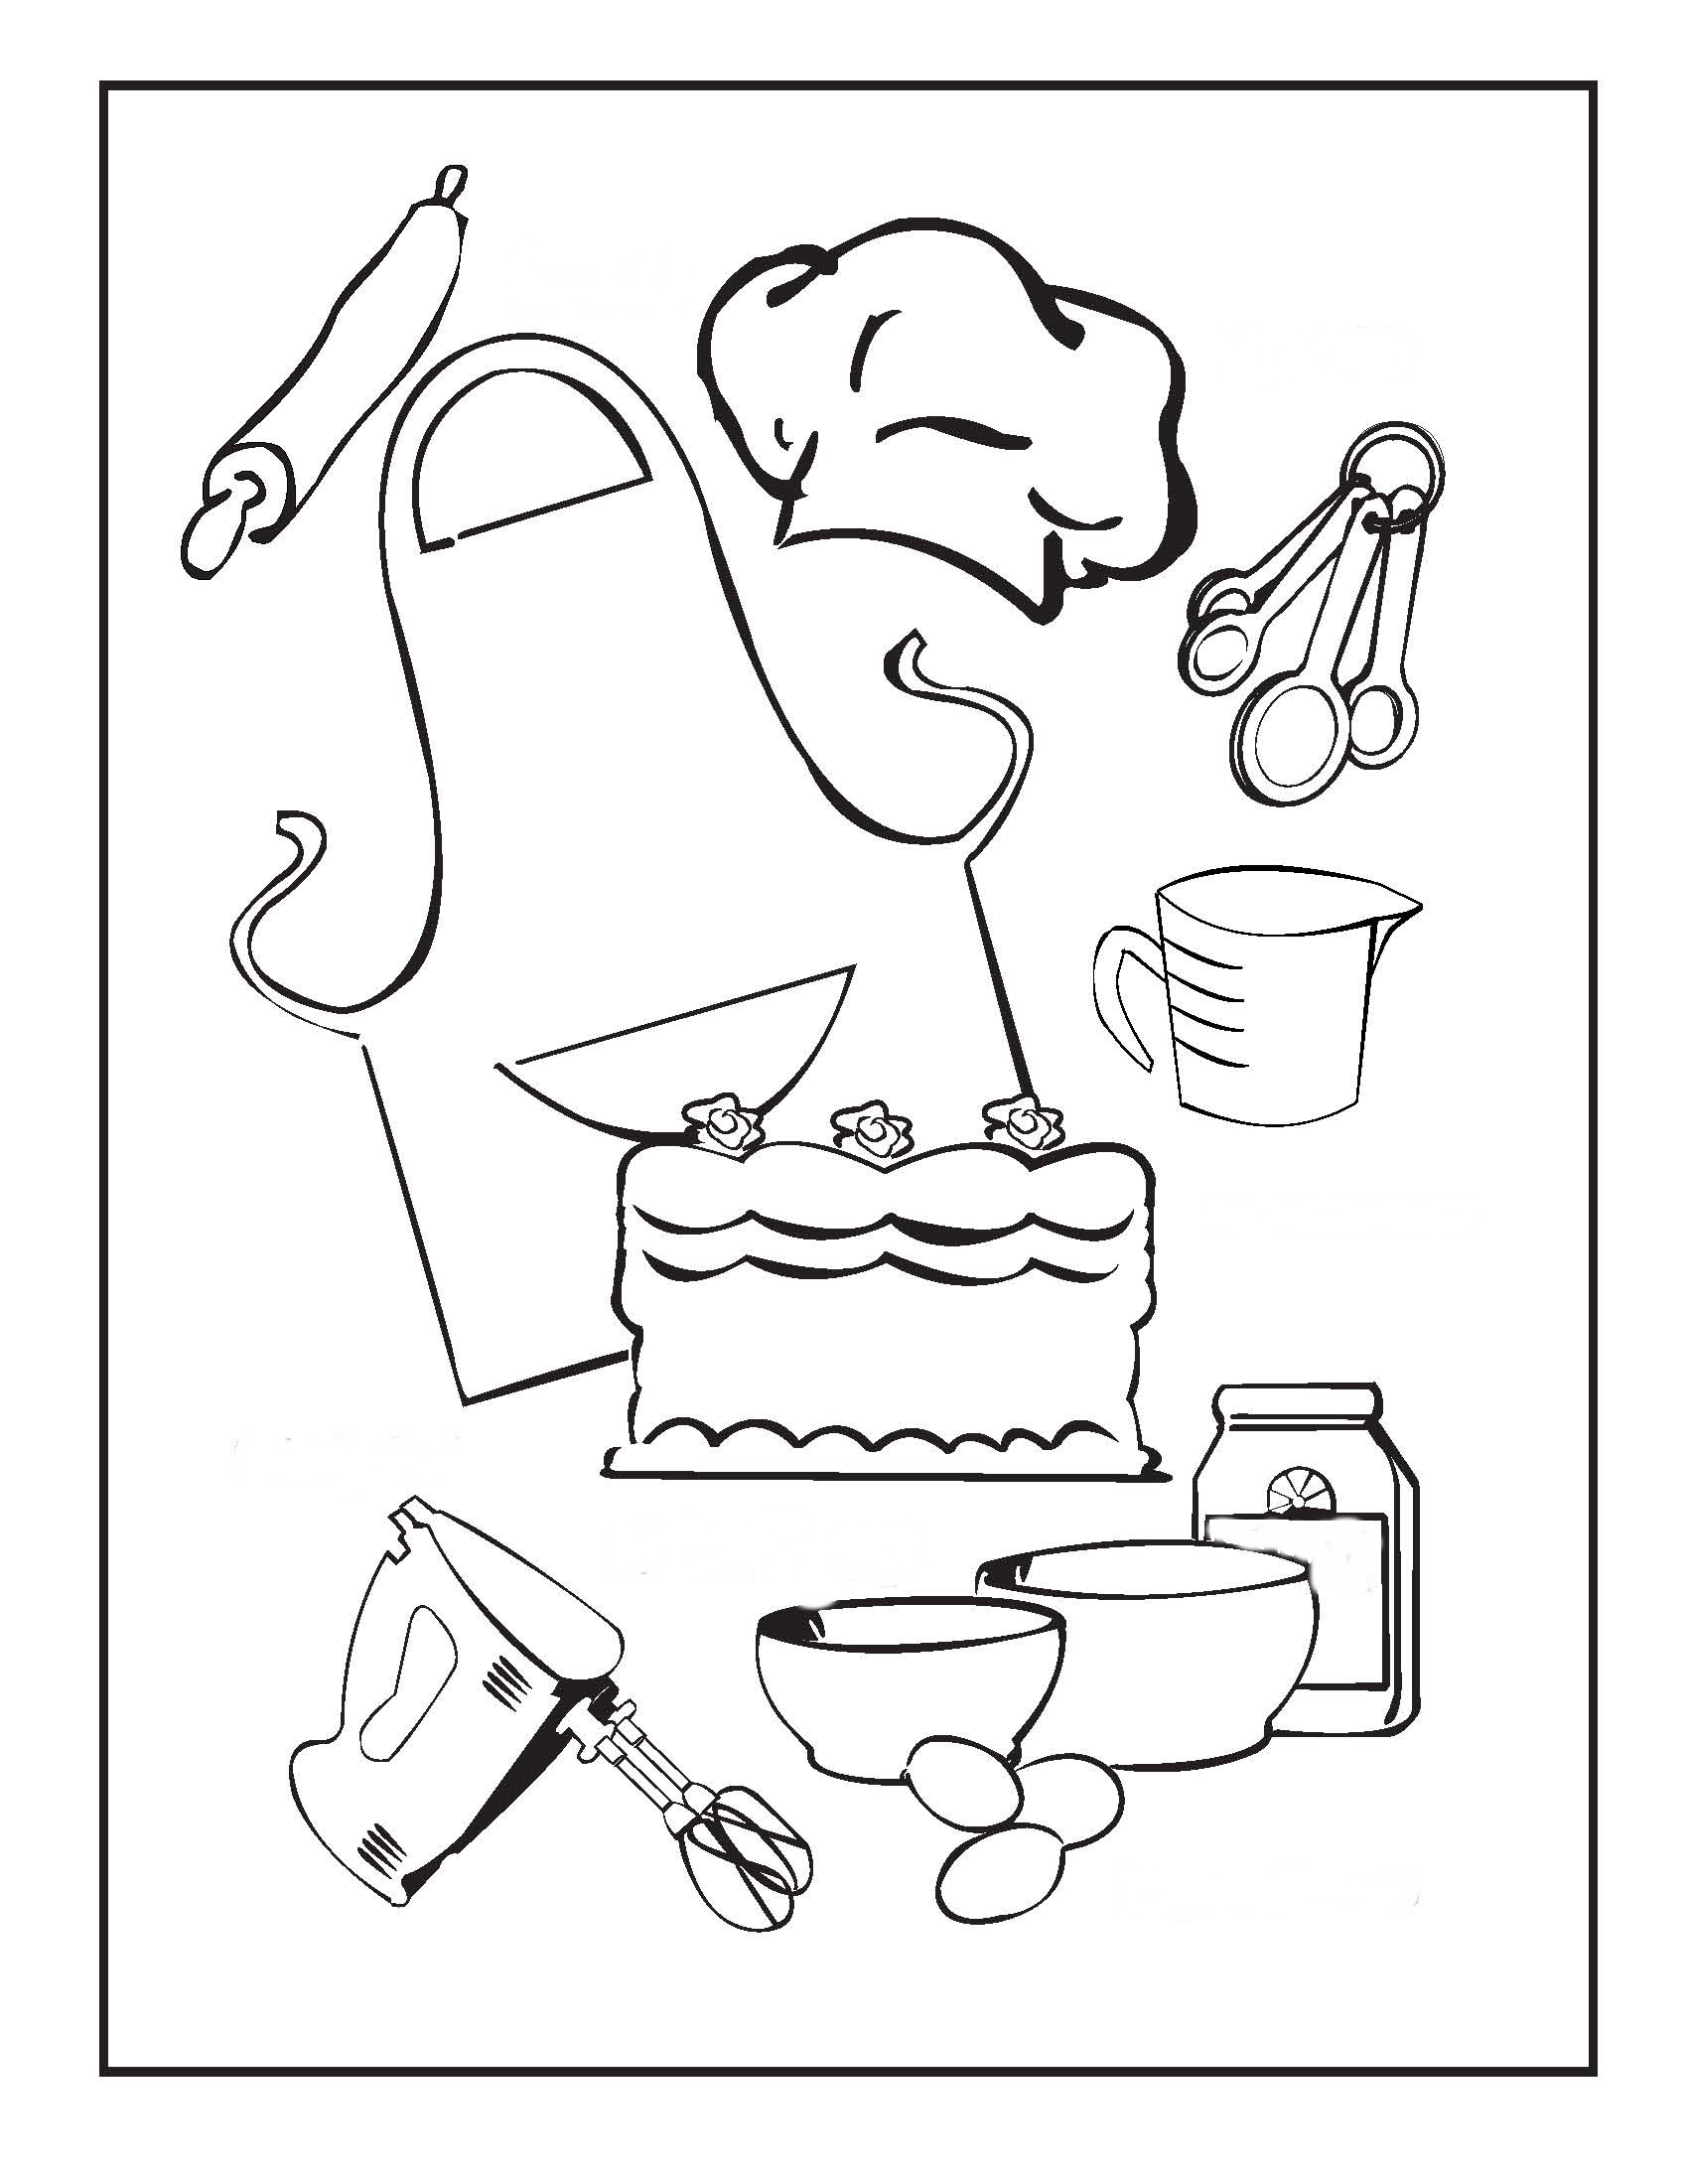 Cooking Coloring Pages To Download And Print For Free